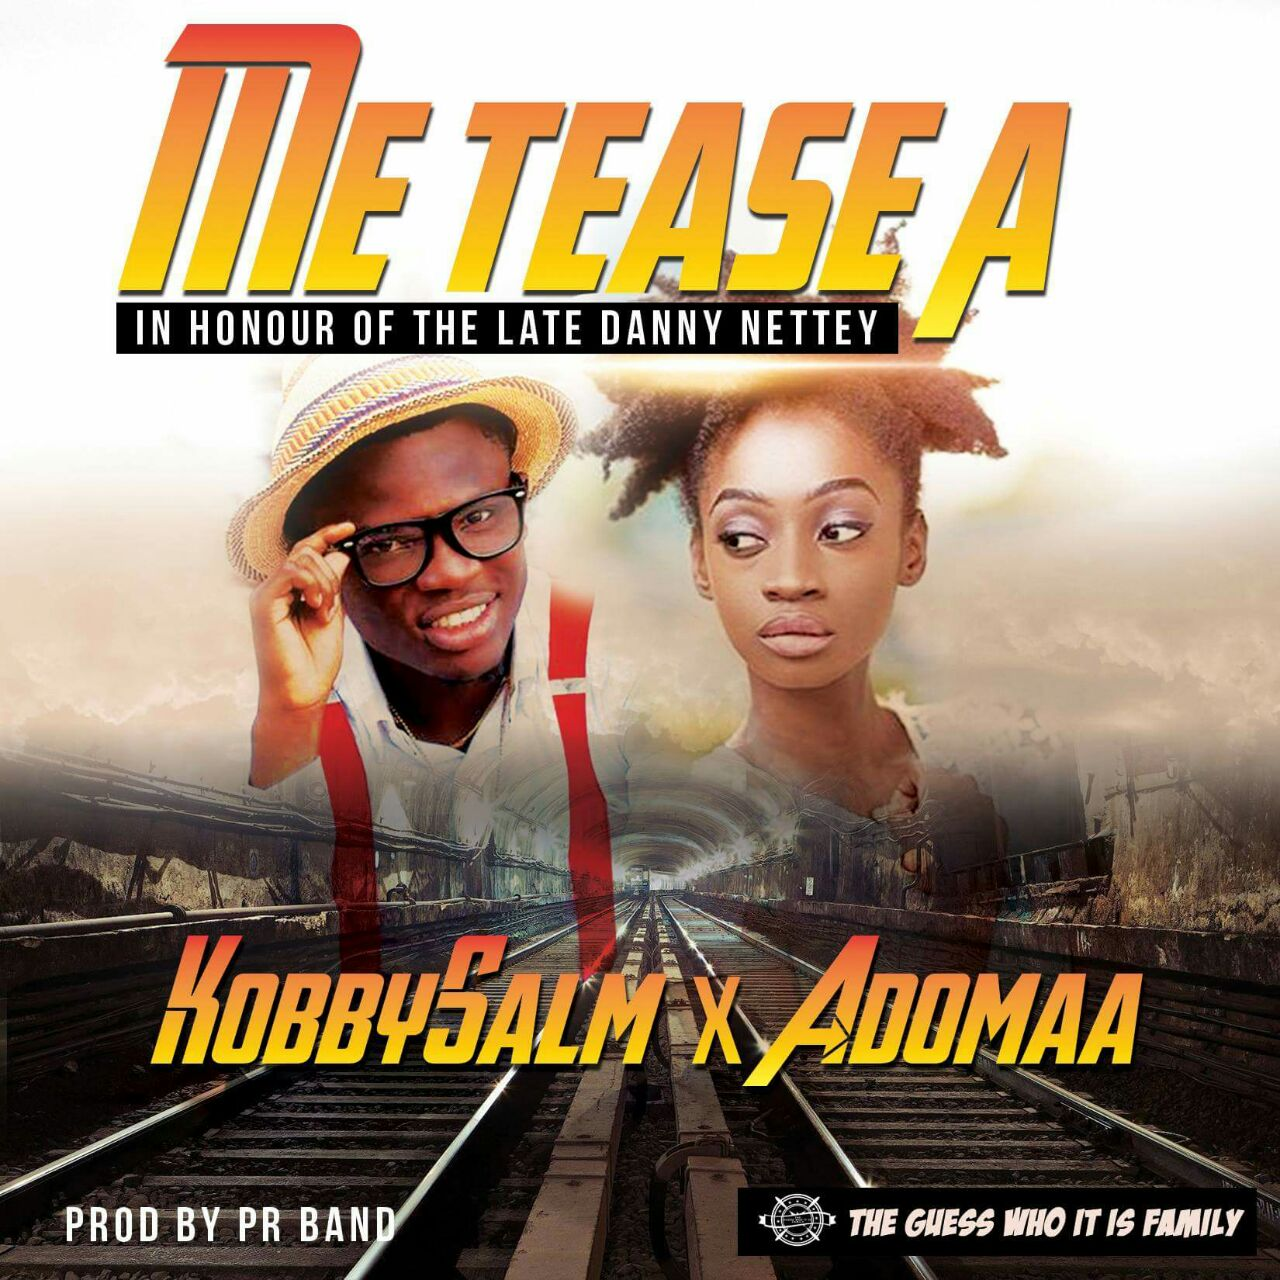 adomaa-x-kobbysalm-metease-a-if-i-live-prod-by-pr-band